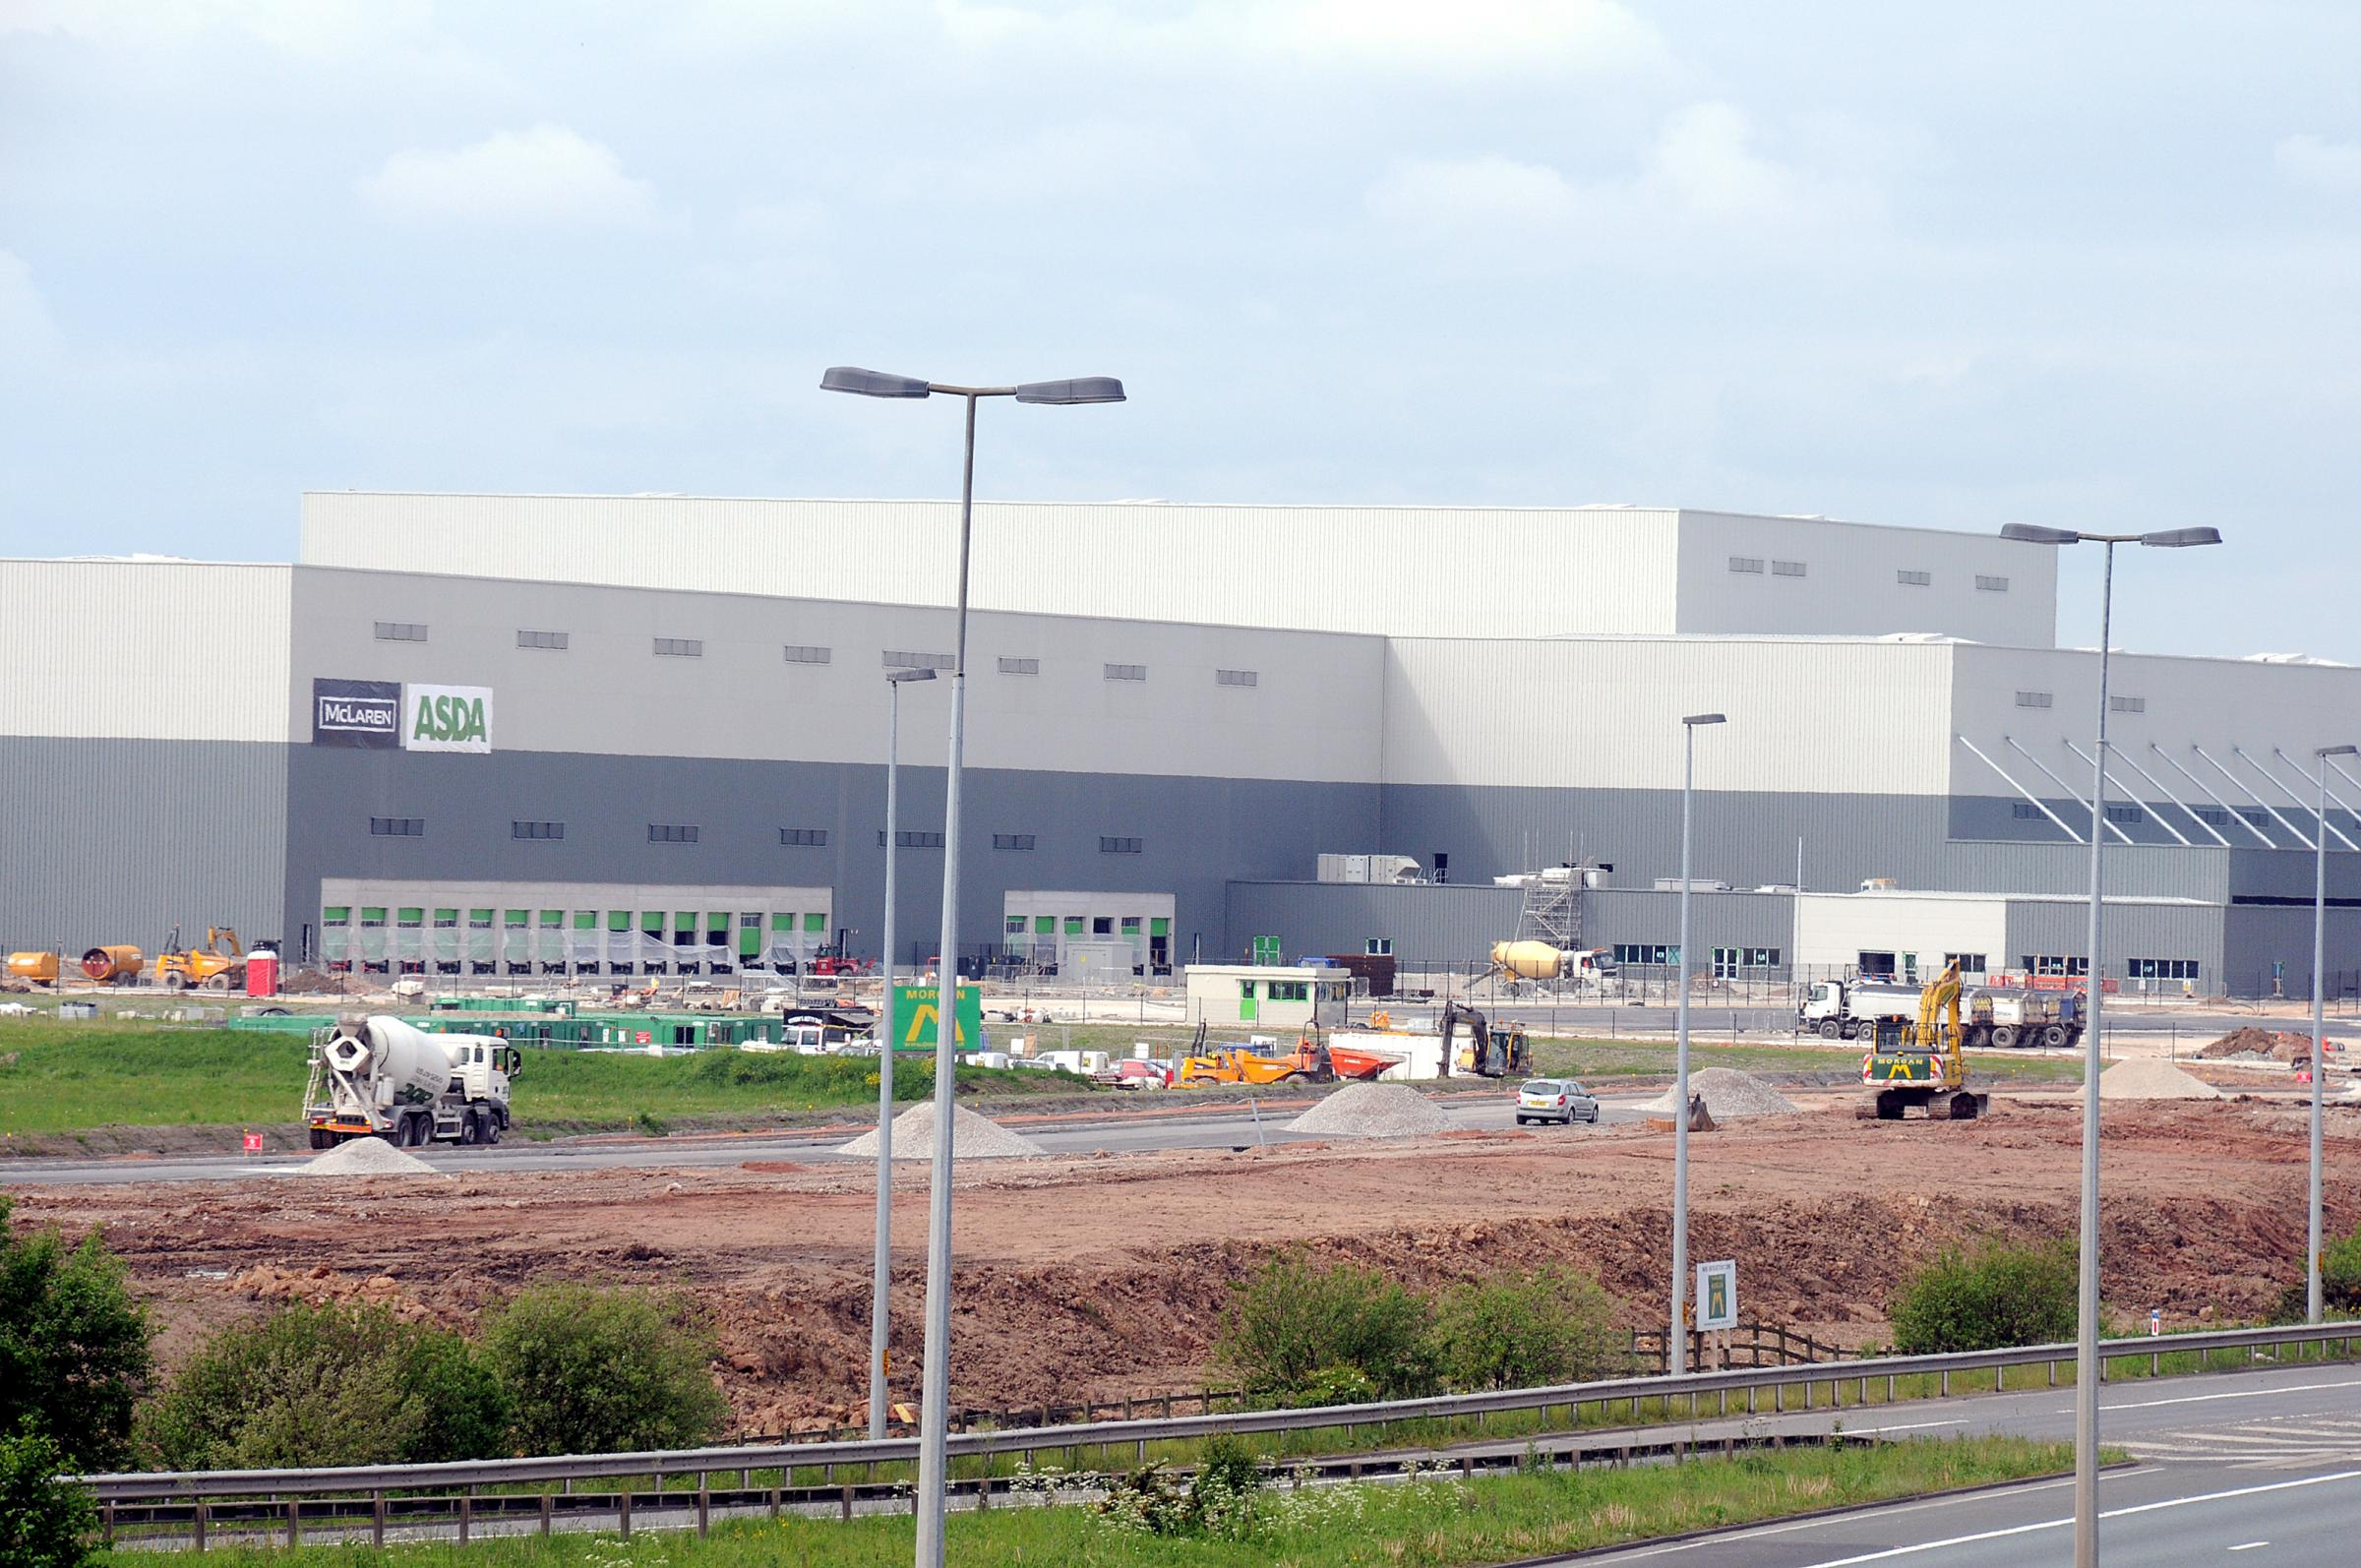 The Asda development taking shape on Omega